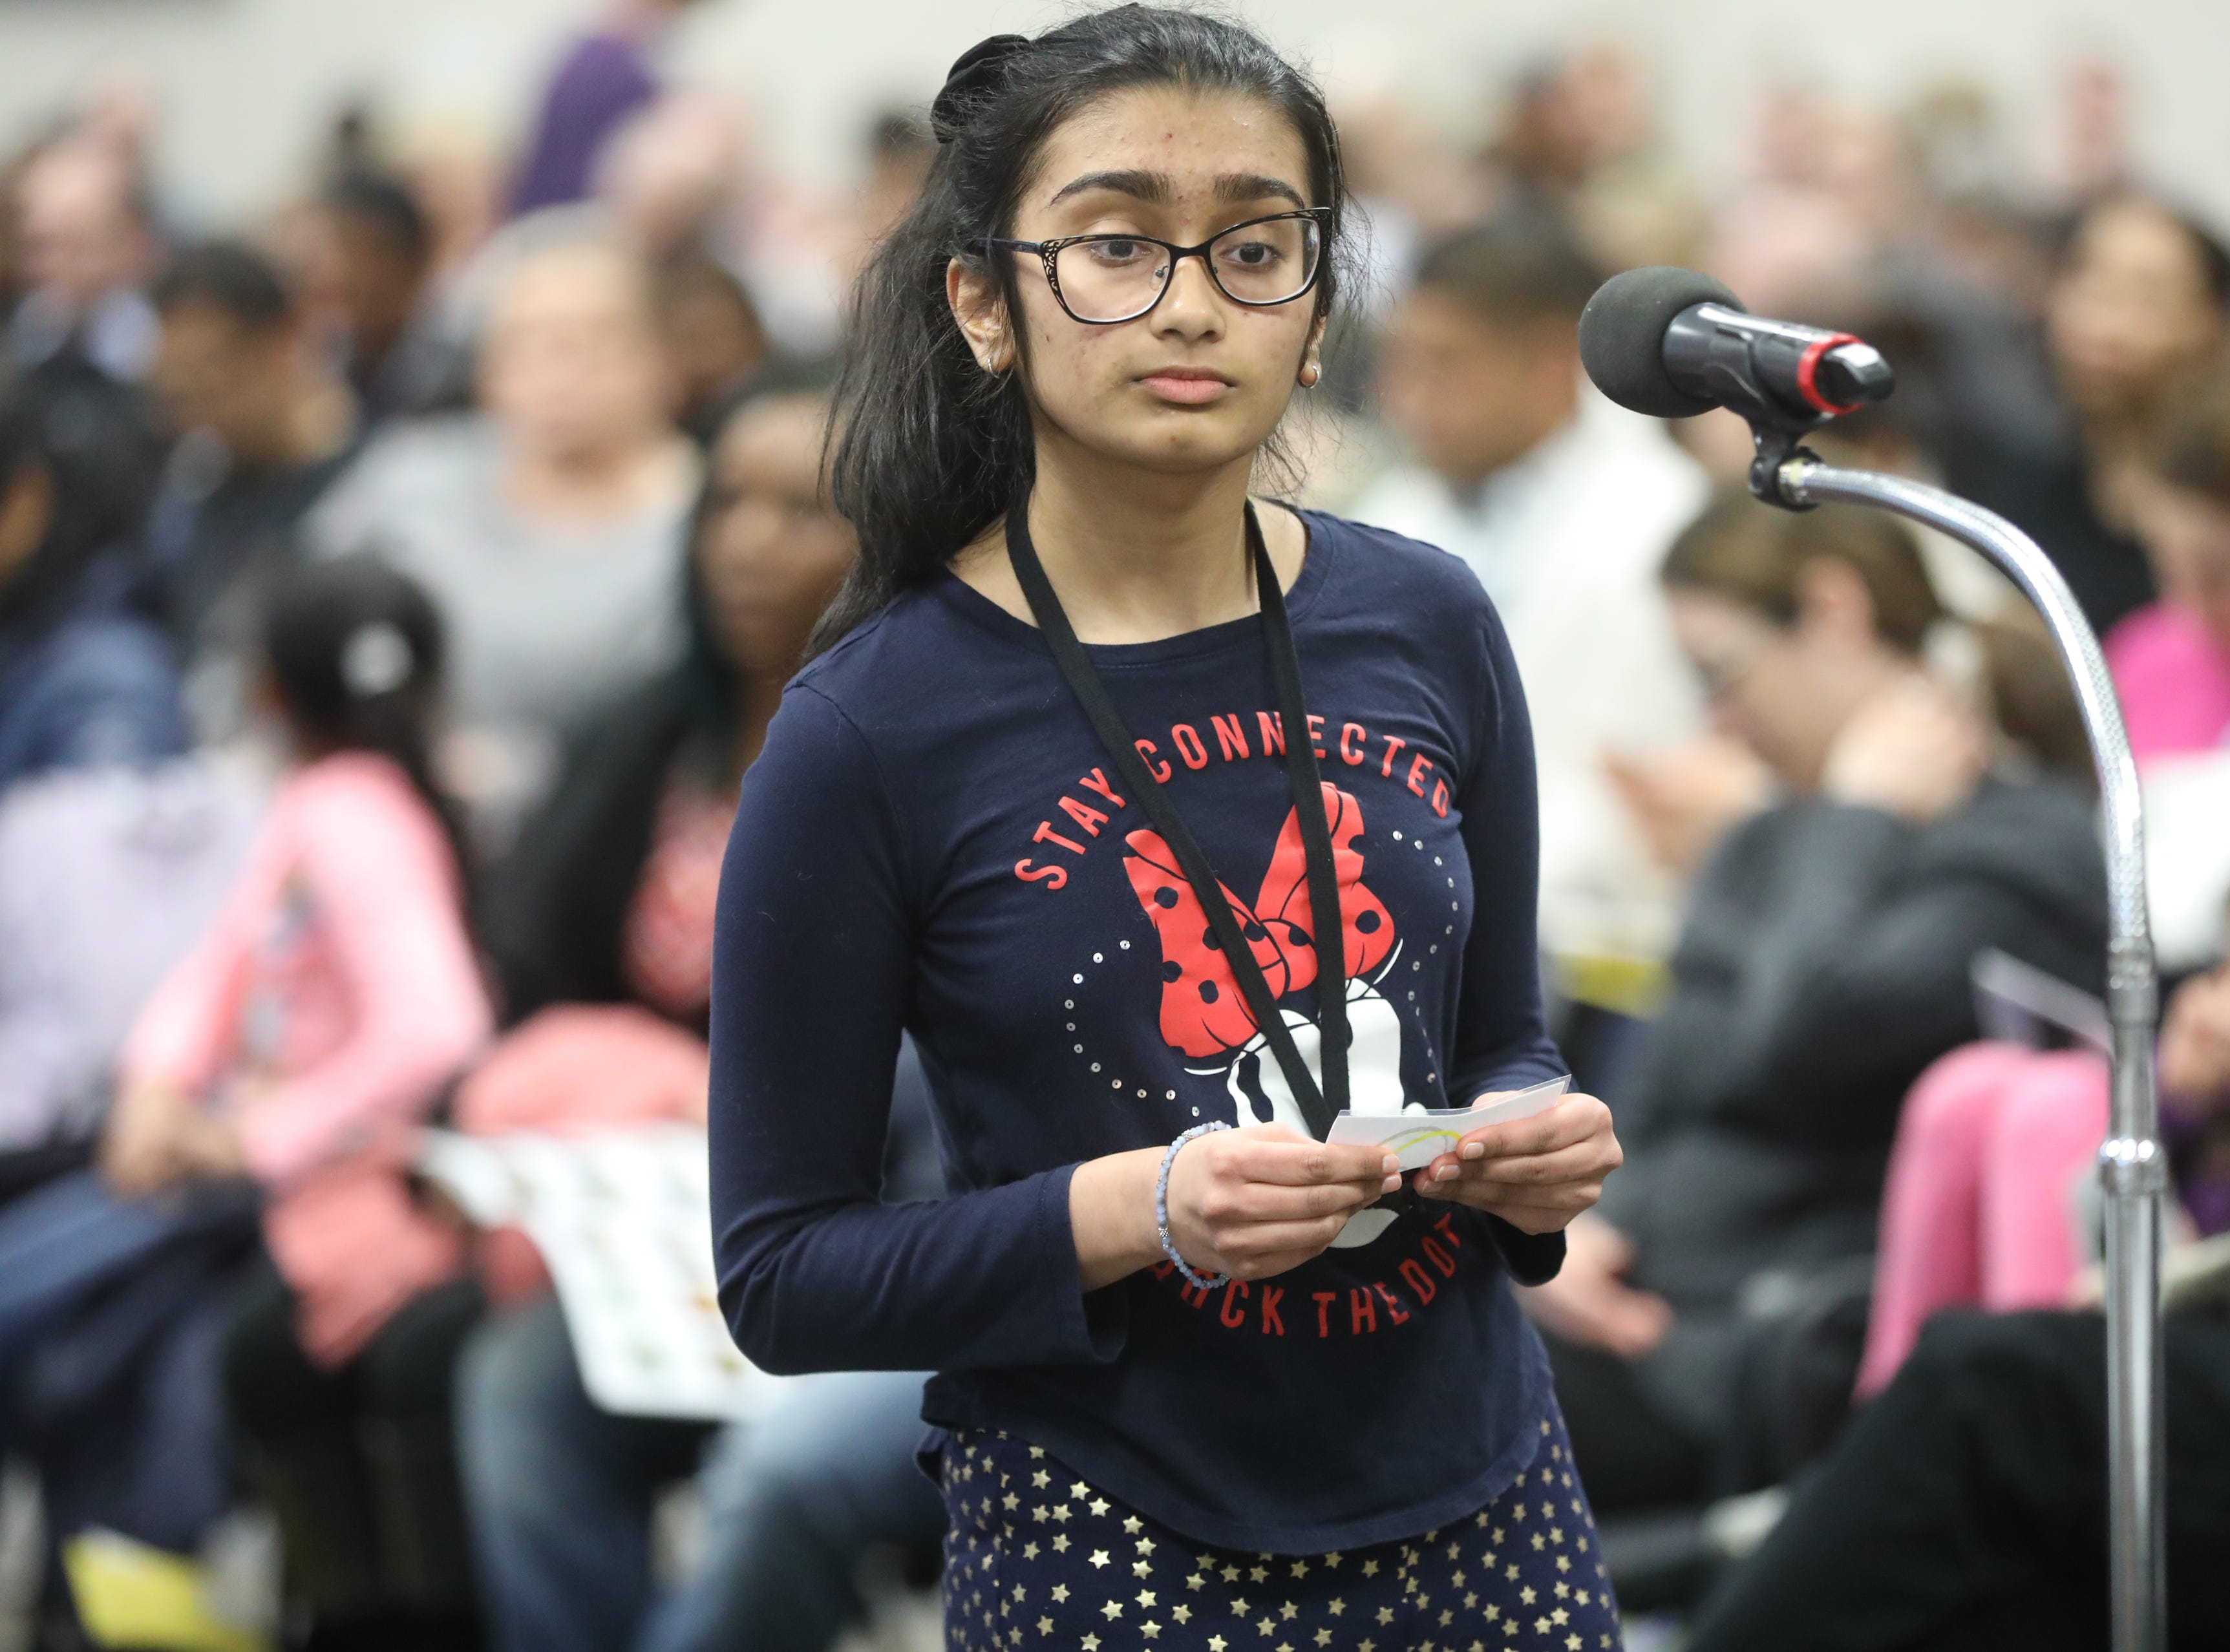 Enya Goonetilleke, of Leonia, competes in the first round of the 2019 North Jersey Spelling Bee, in Paramus. Thursday, March 14, 2019